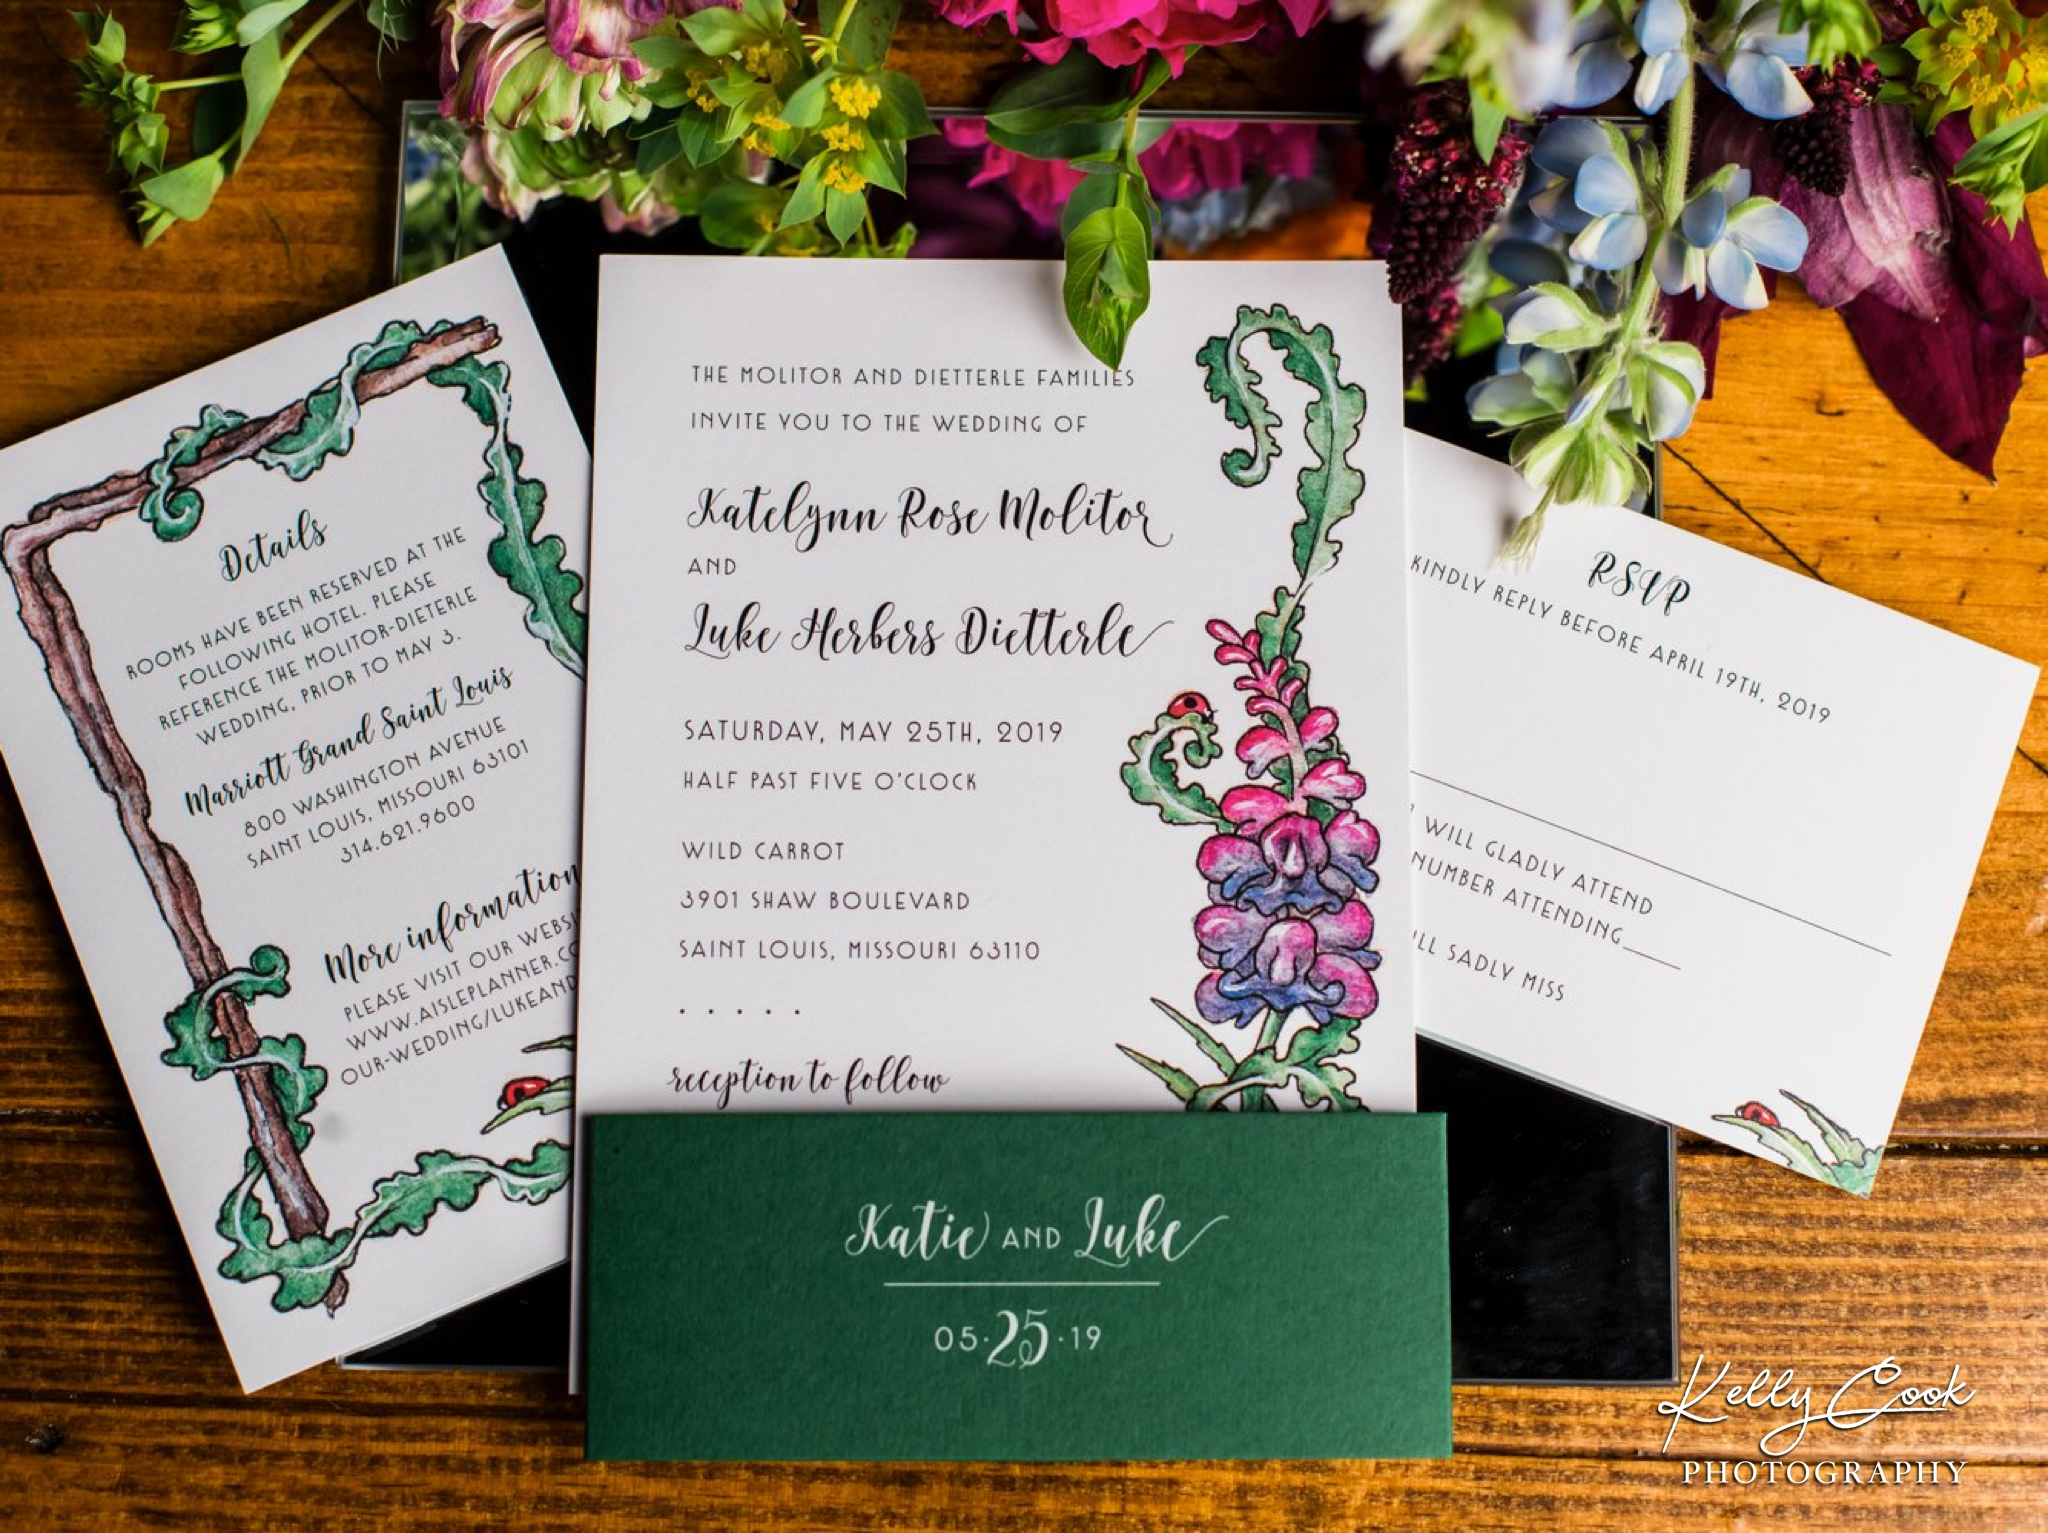 Colorful wedding invitation and flowers